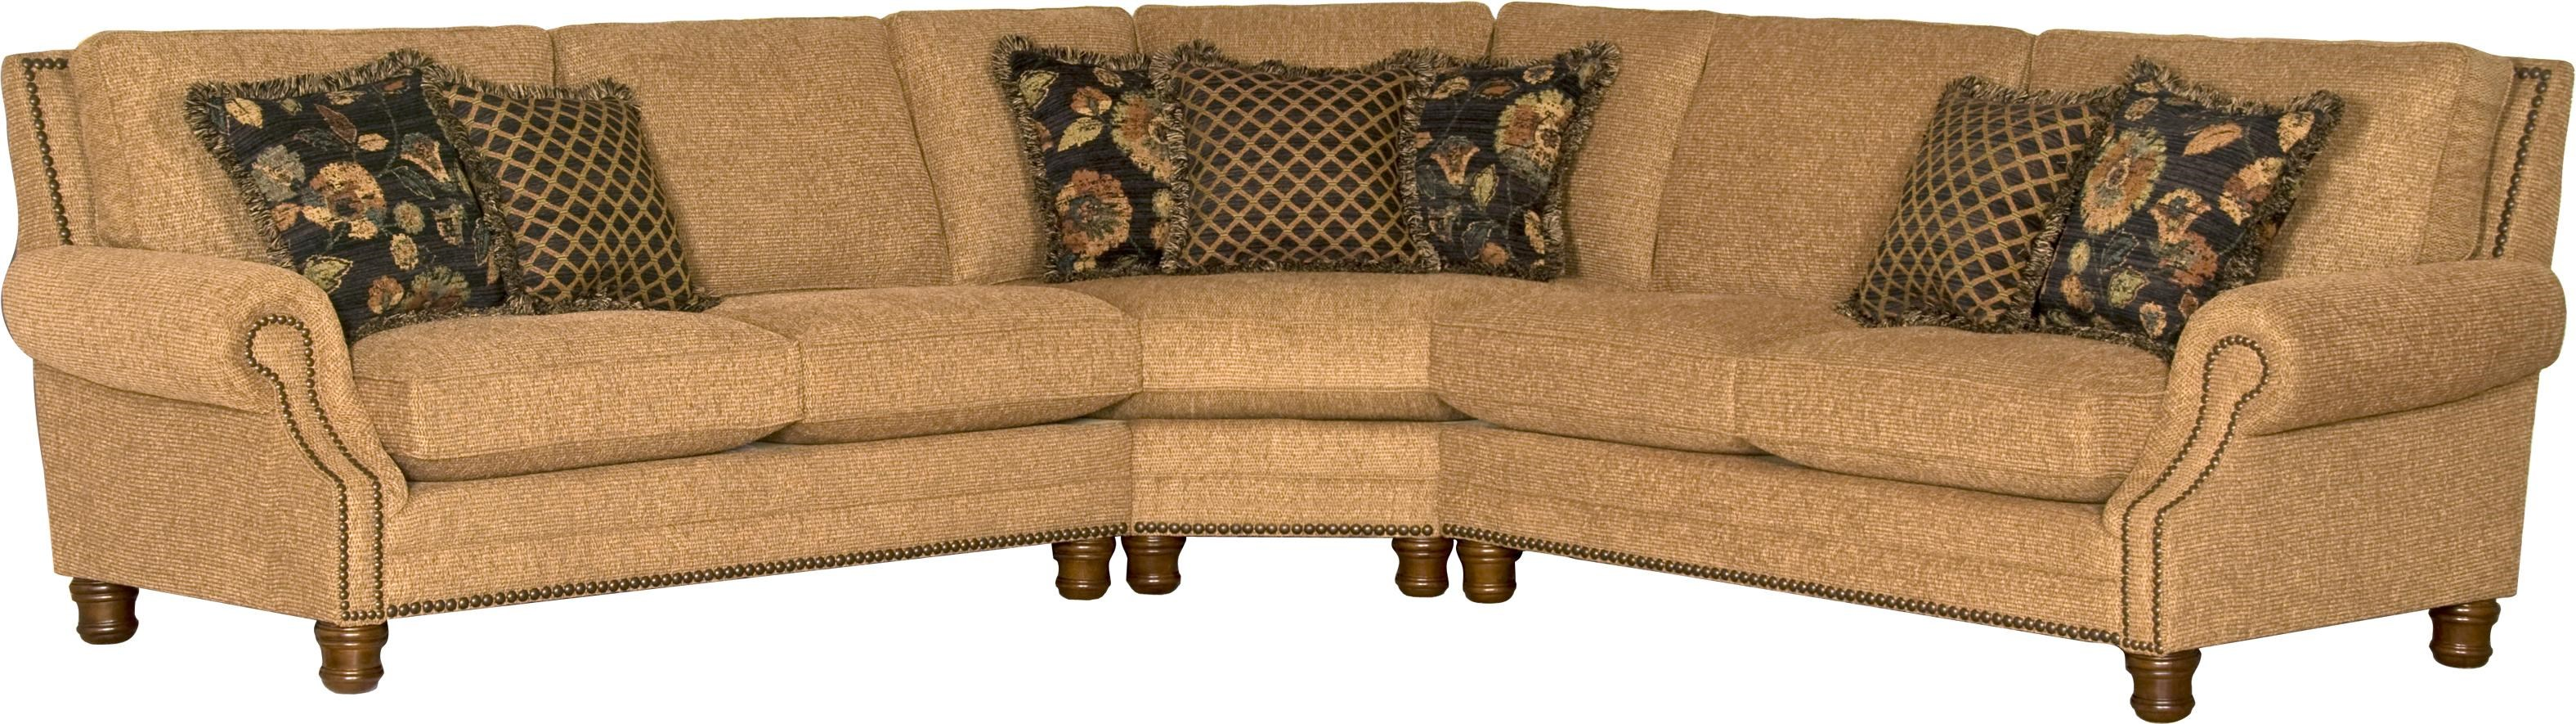 Mayo 5790 Traditional 3 Piece Sectional Sofa  sc 1 st  Olindeu0027s Furniture : 3 sectional sofa - Sectionals, Sofas & Couches